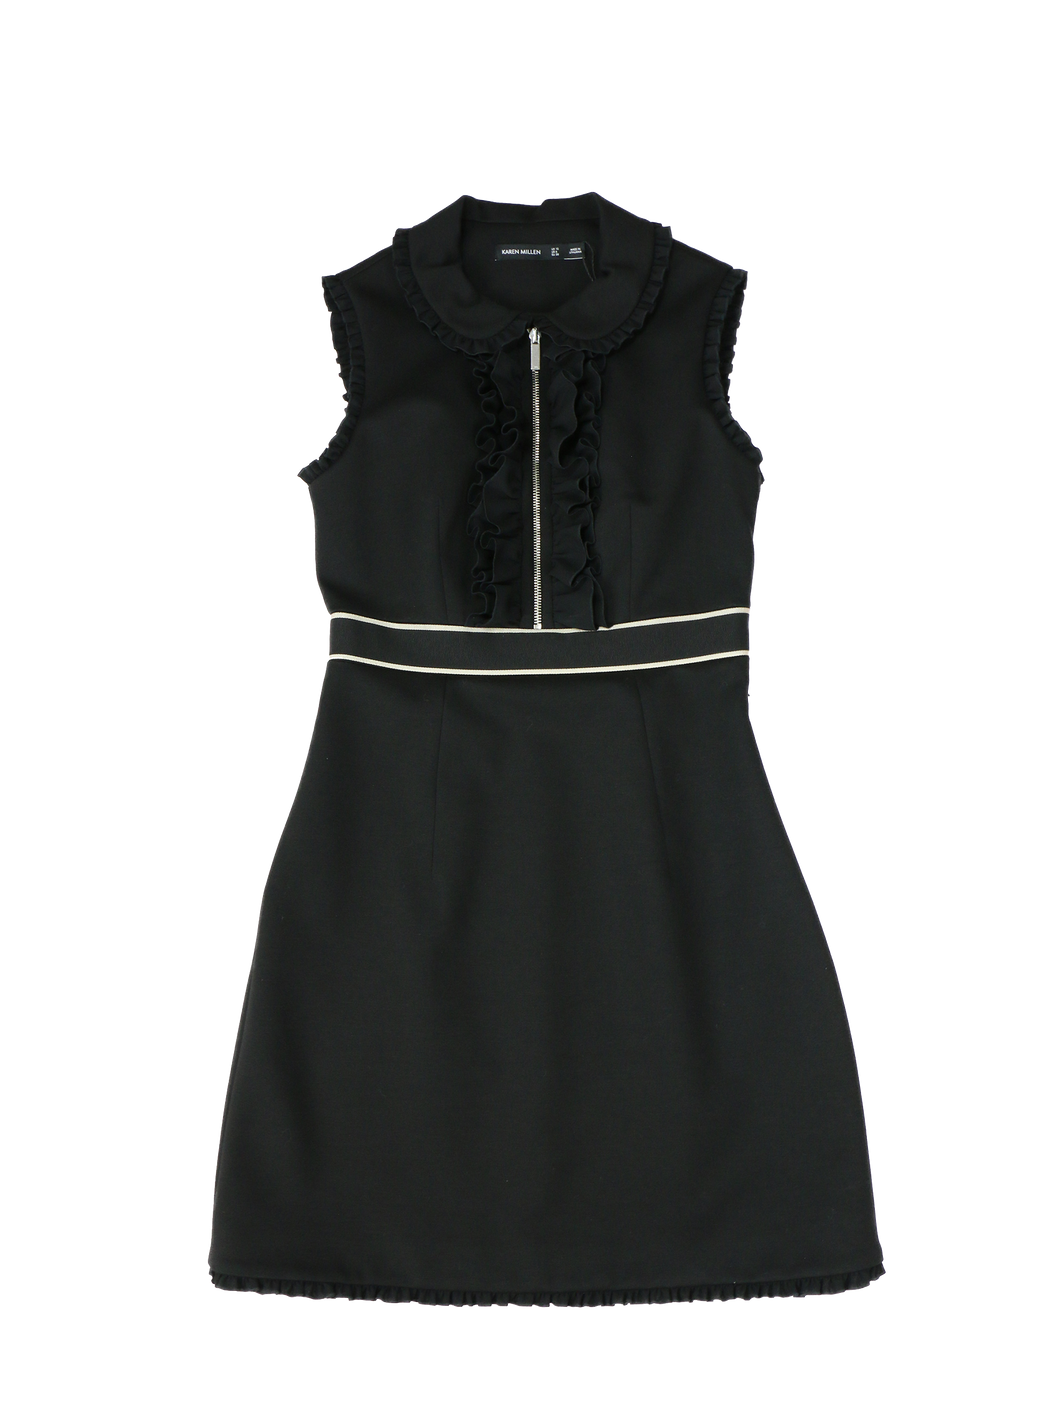 KAREN MILLEN black one-piece - Poupee Boutique